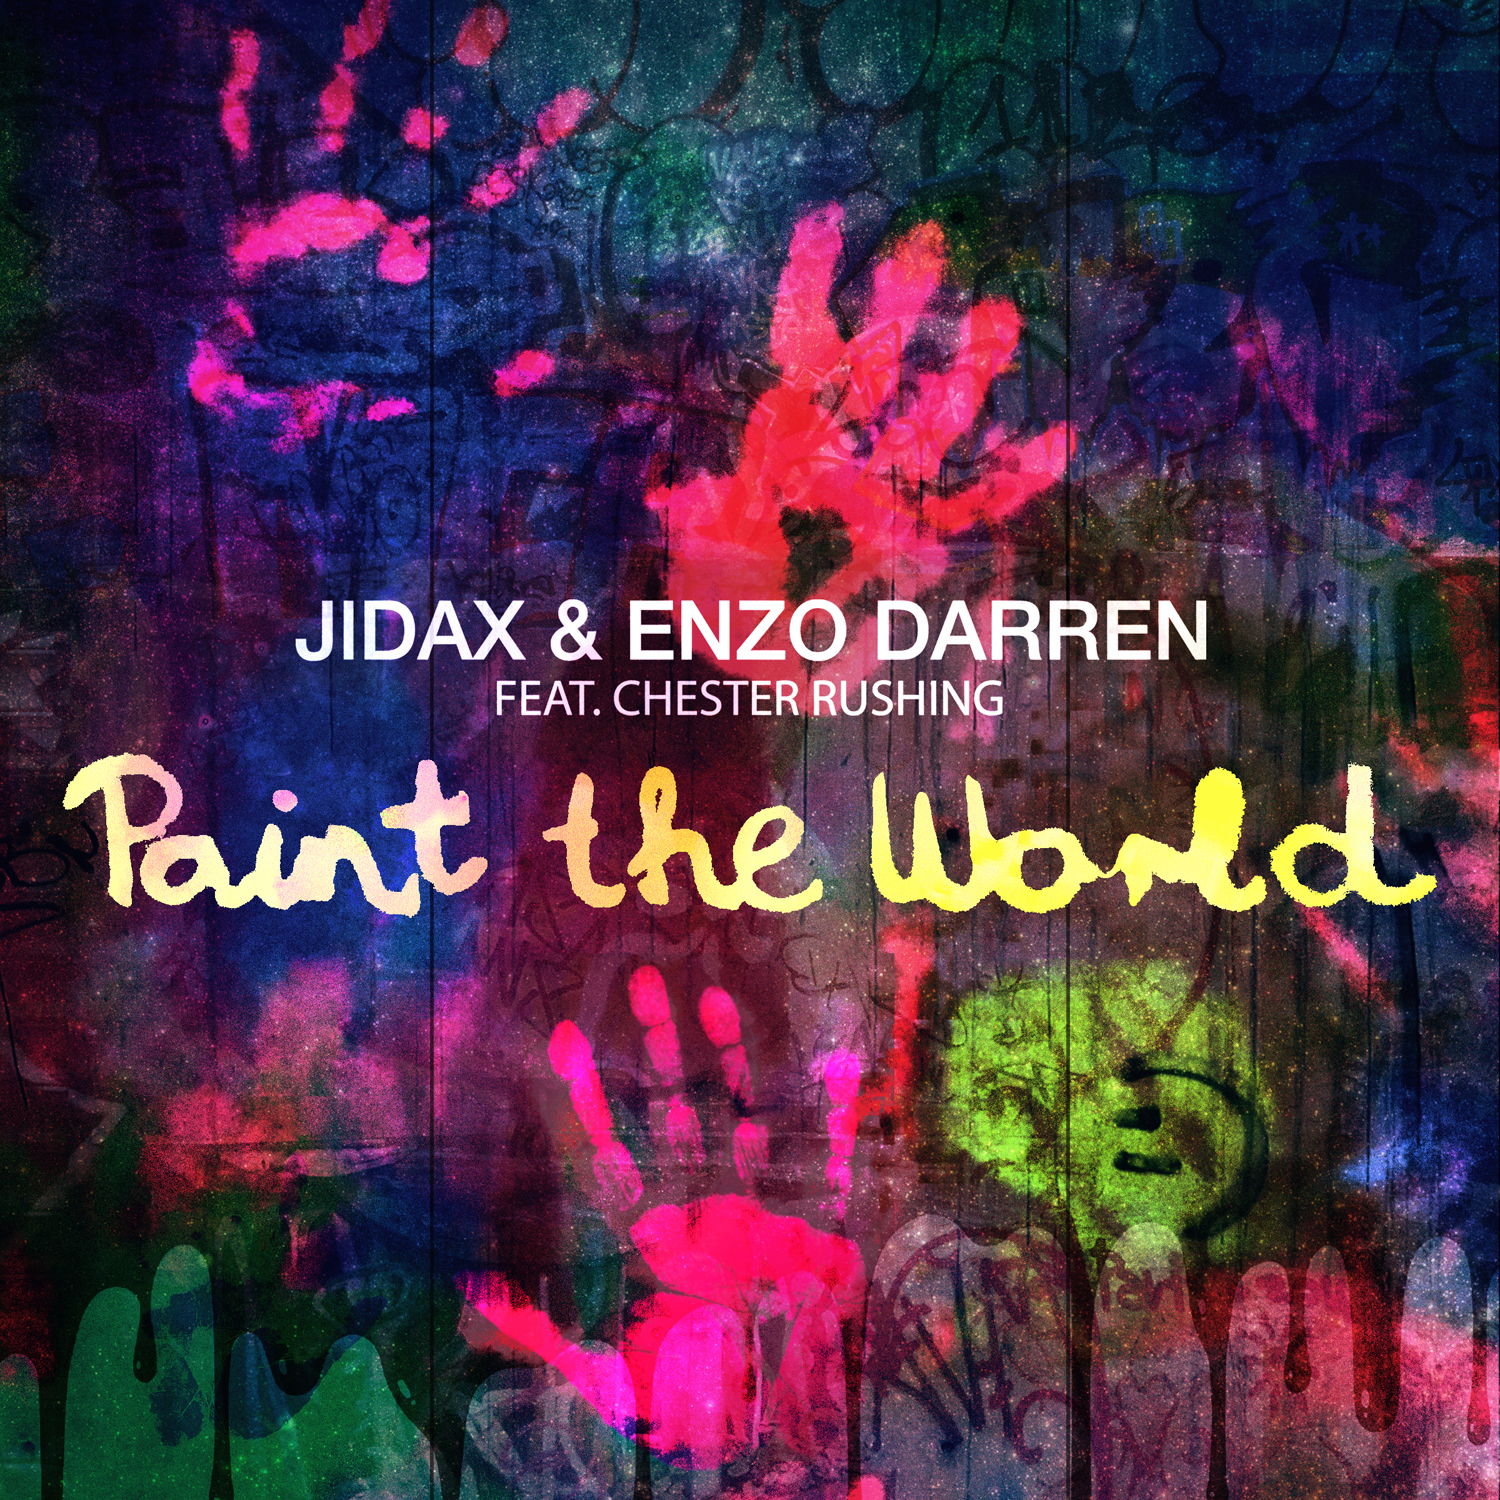 Jidax & Enzo Darren feat. Chester Rushing - Paint The World